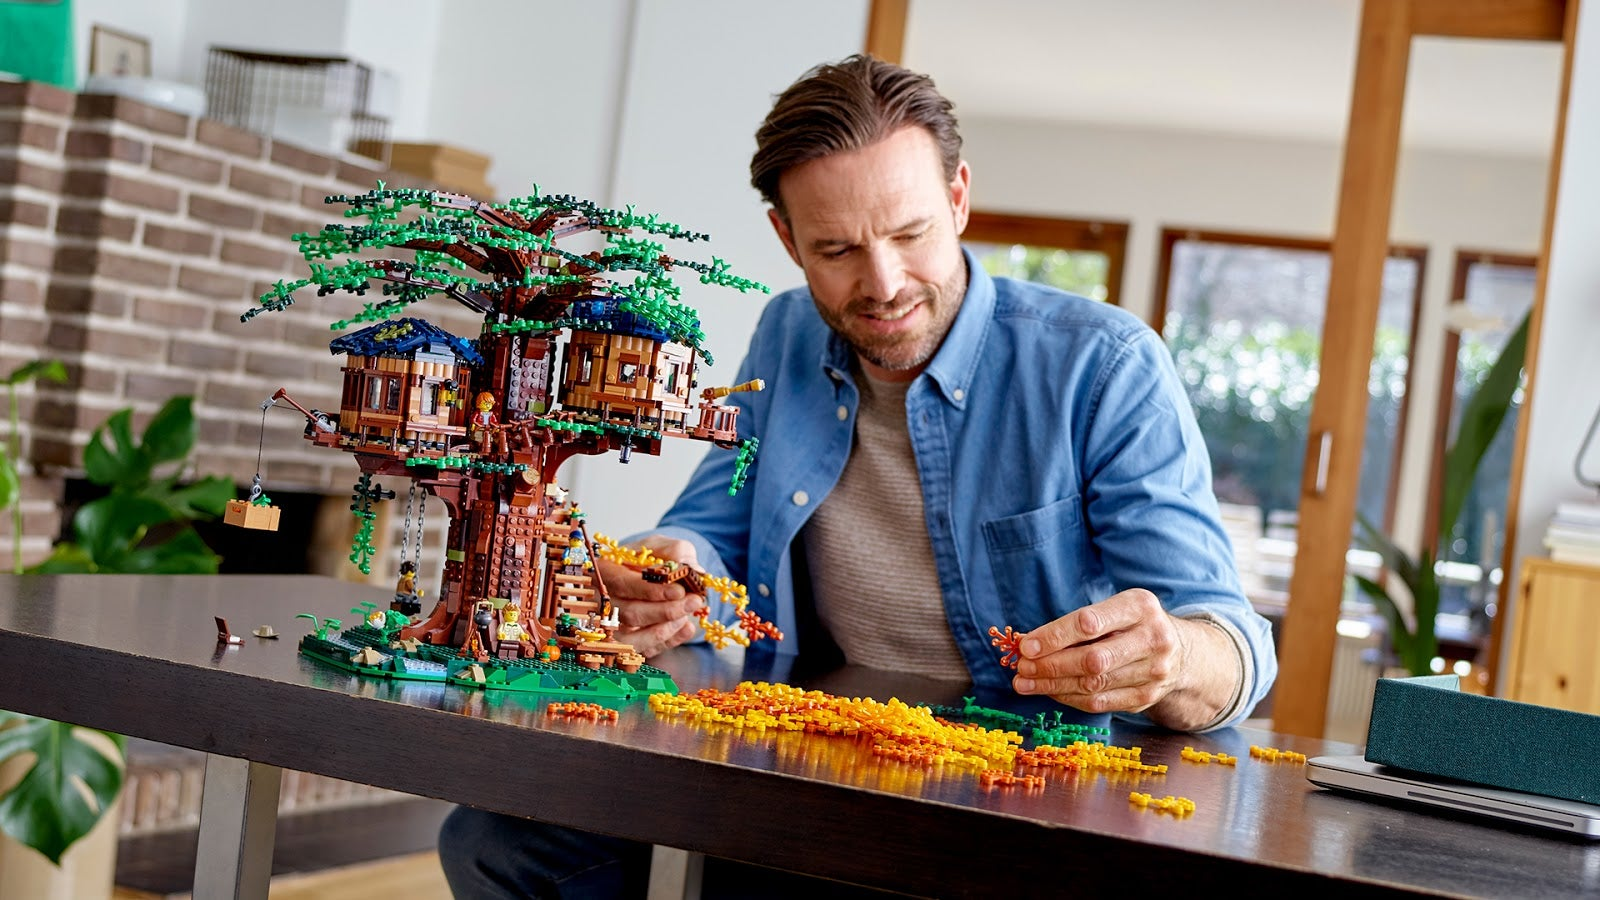 The New Lego Ideas Treehouse Includes Over 180 Plant-Based Bricks